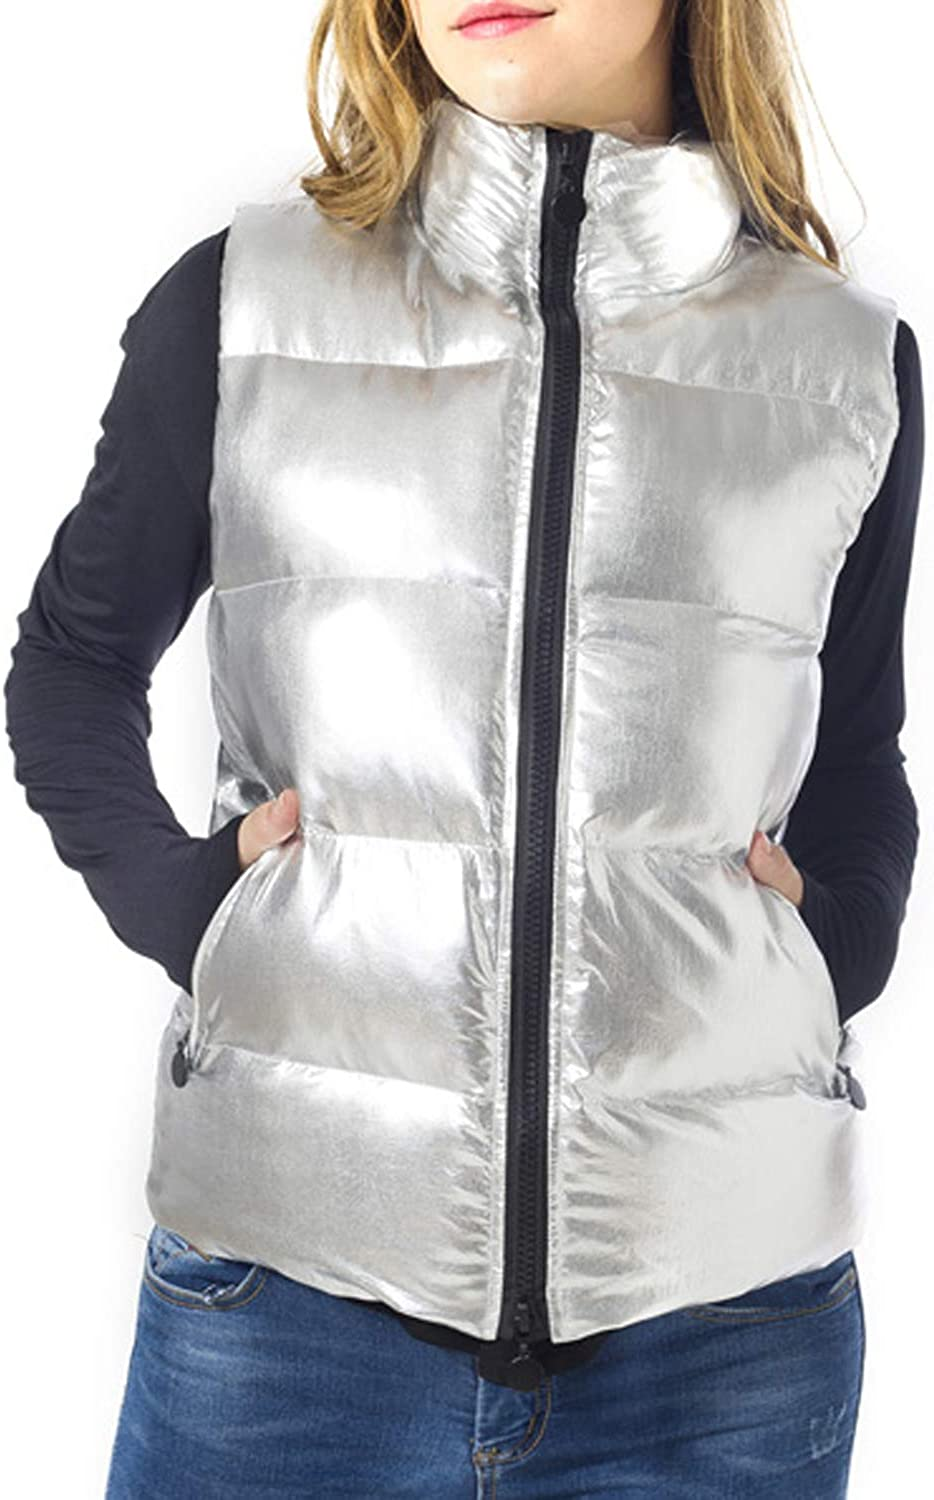 Silverts Disabled Adults /& Elderly Needs Womens Warm Bed Jacket Cape Or Bed Shawl